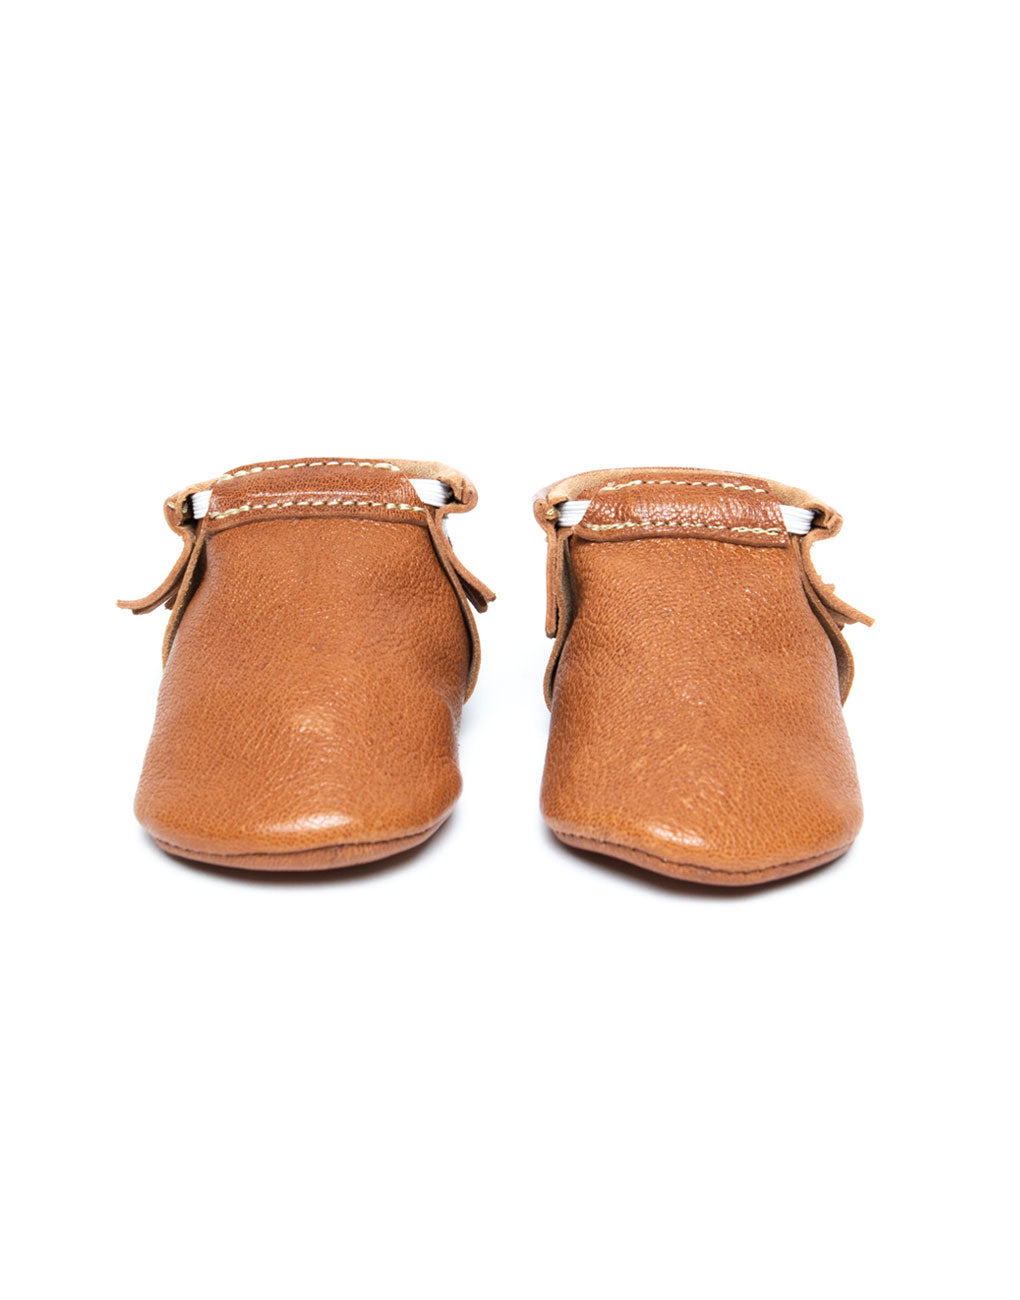 tan baby shoes tan linen moccasins newborn moccasins soft shoes for toddlers Tan baby moccasins baby shower gift